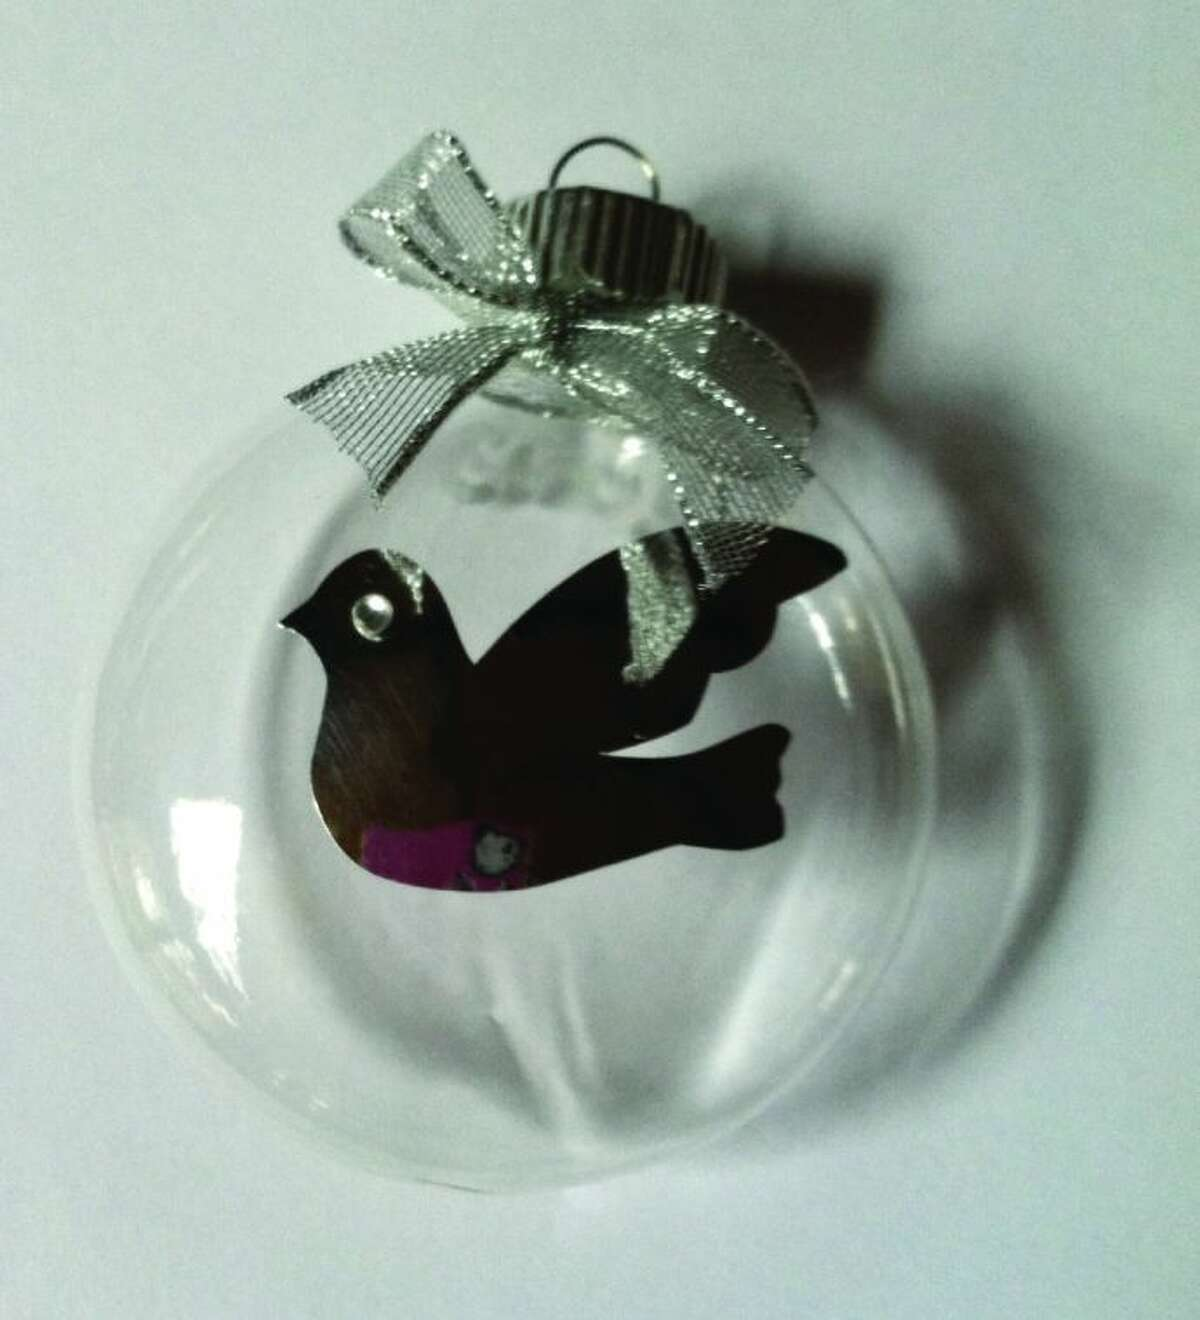 For 15 of the past 21 years, Jane Cashner has handmade each Tree of Remembrance Christmas ornament gifted for those who attend the Cashner Funeral Home's annual Tree of Remembrance Service. This year's theme, peace, is signified by the dove in flight.